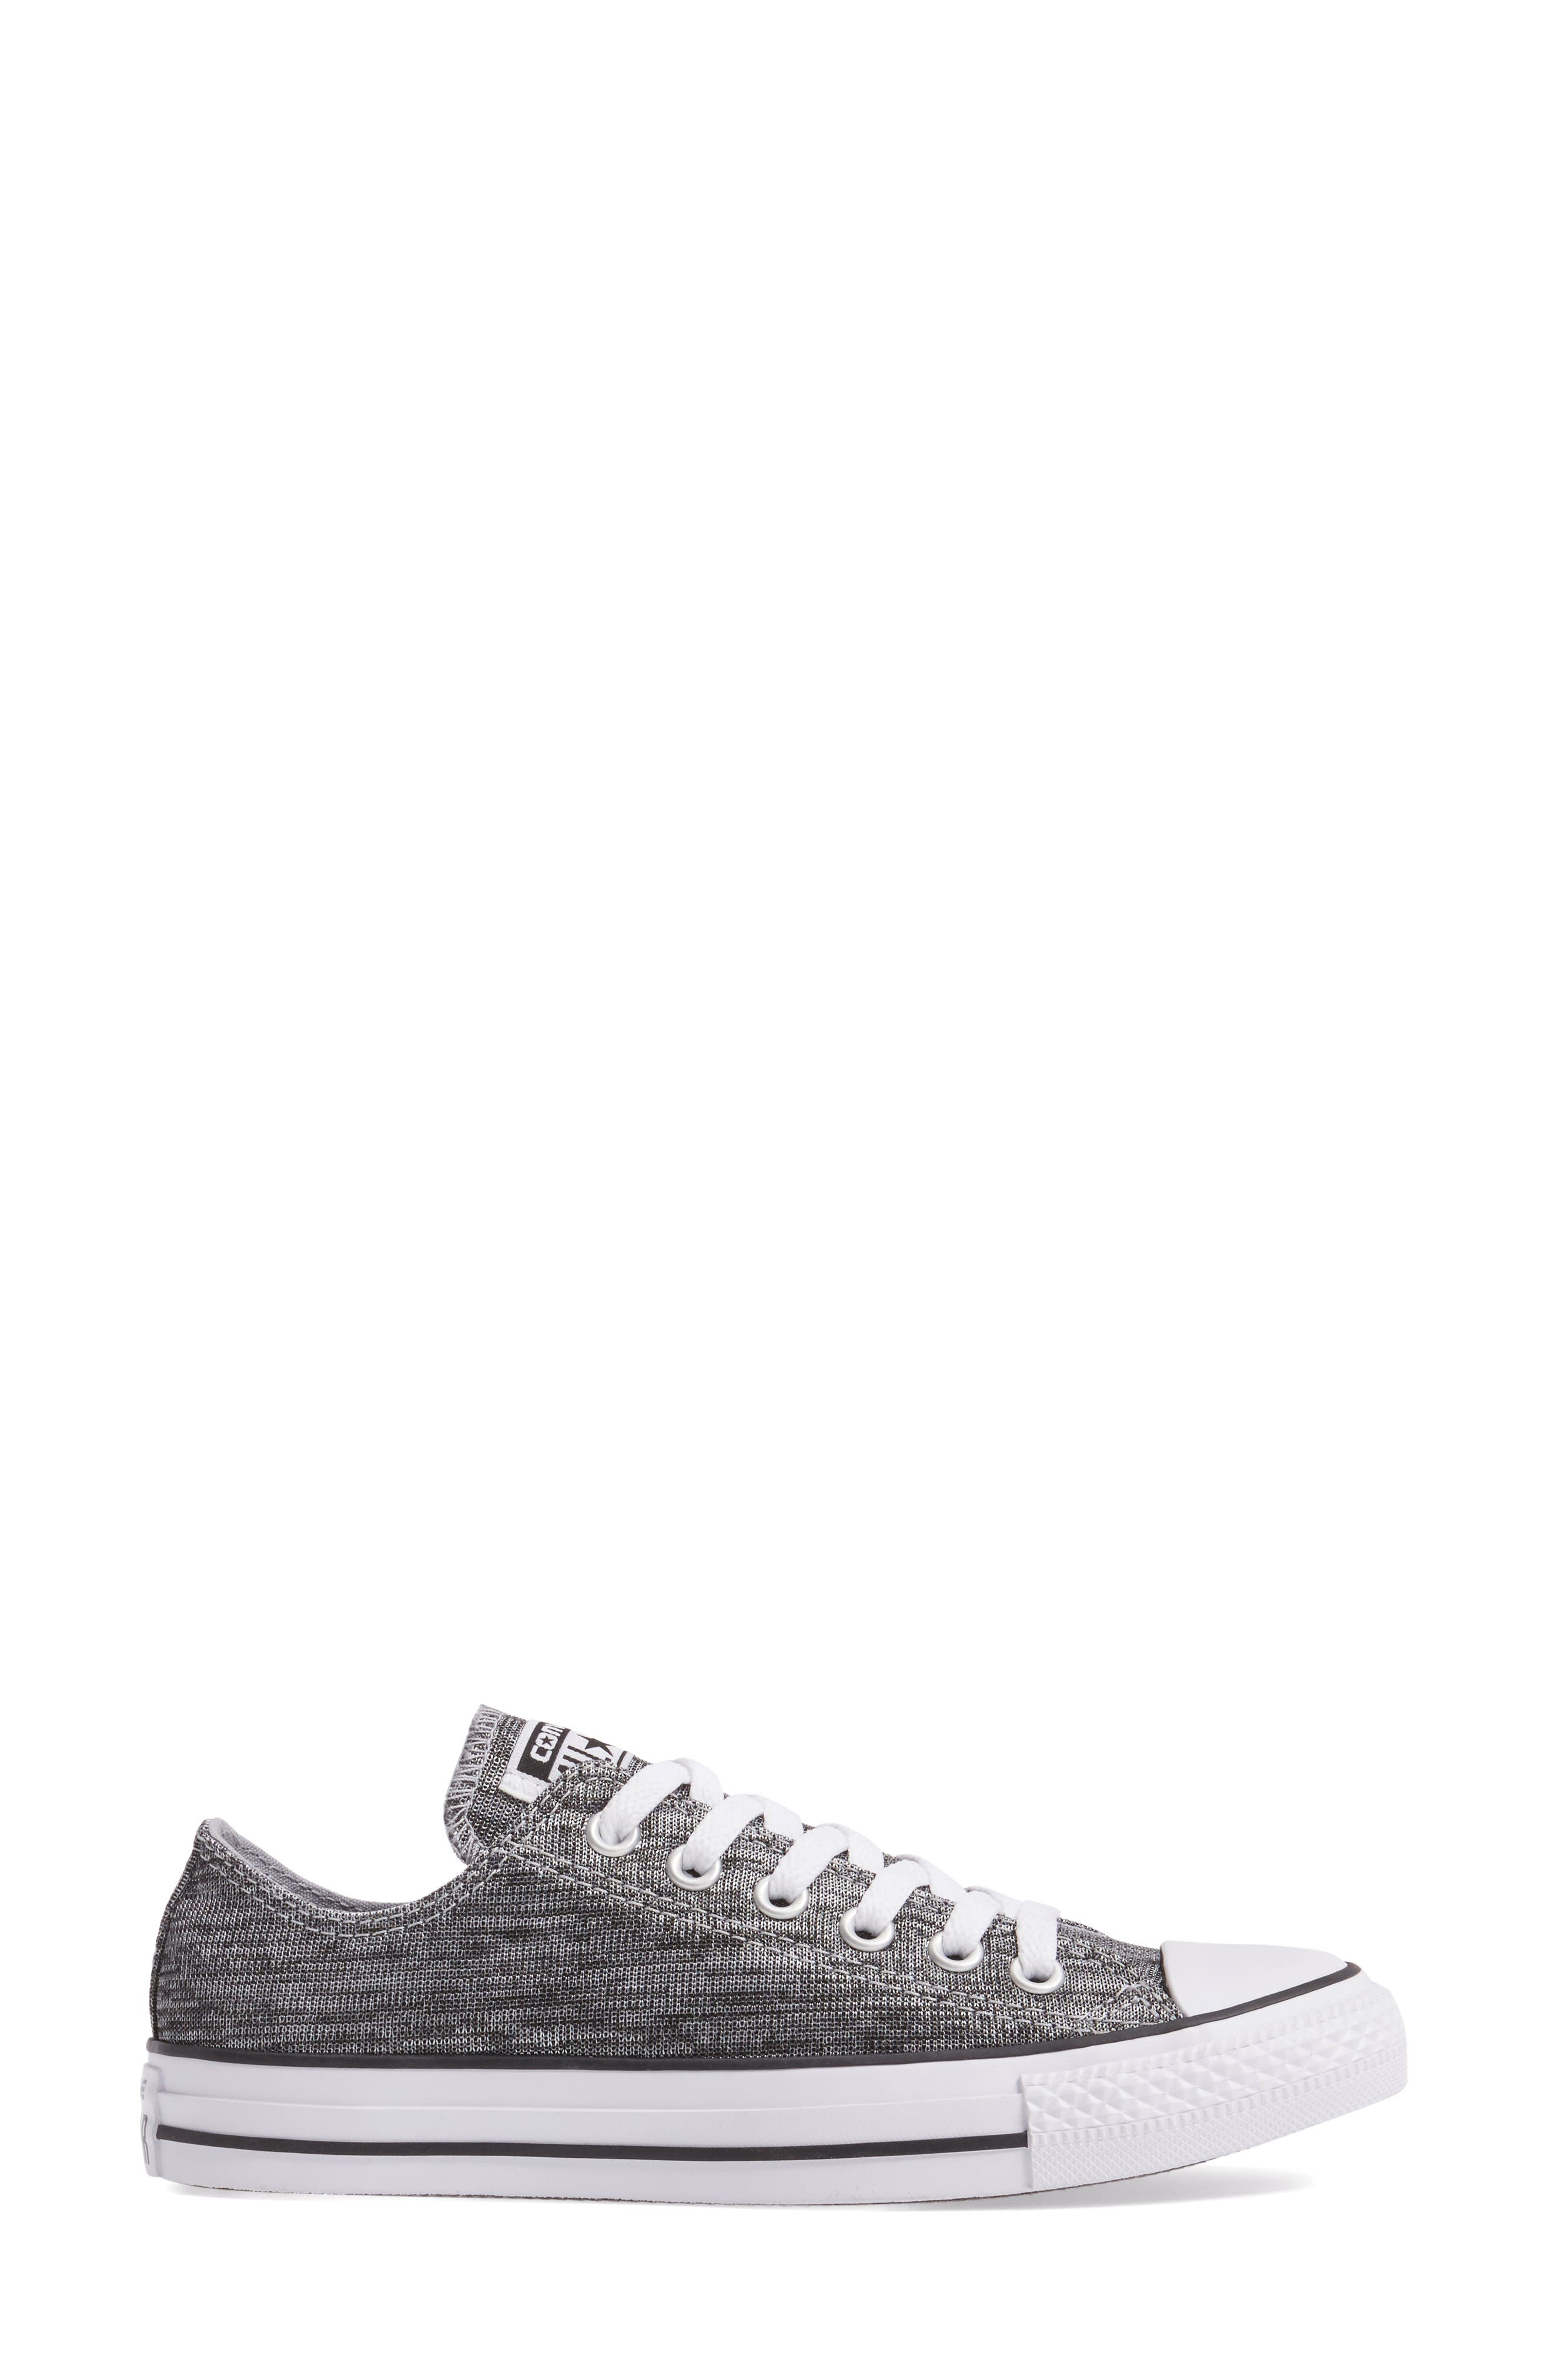 Alternate Image 3  - Converse Chuck Taylor® All Star® Knit Low Top Sneaker (Women)